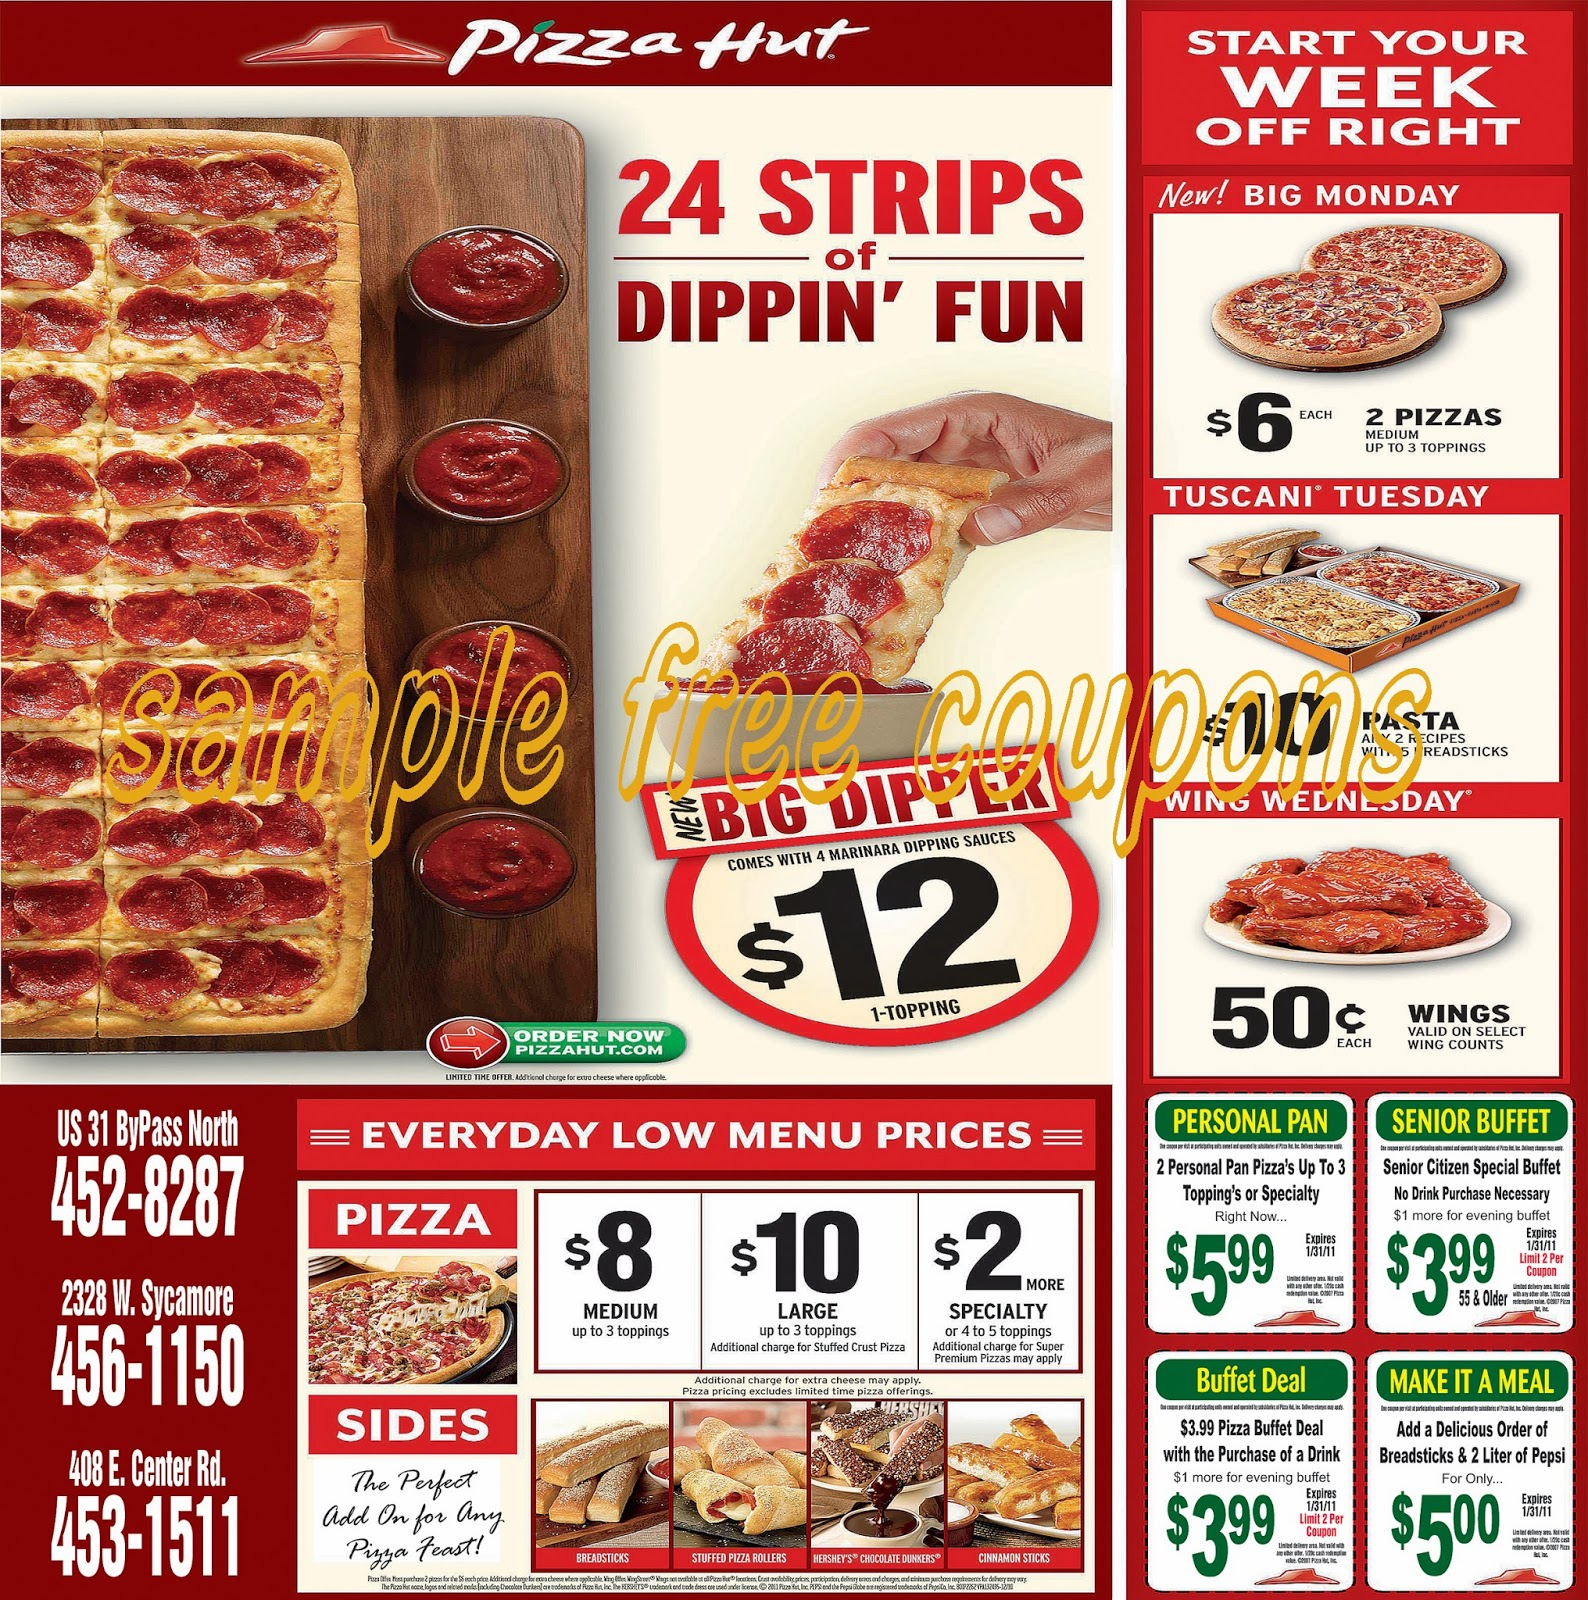 Pizza hut coupons discounts